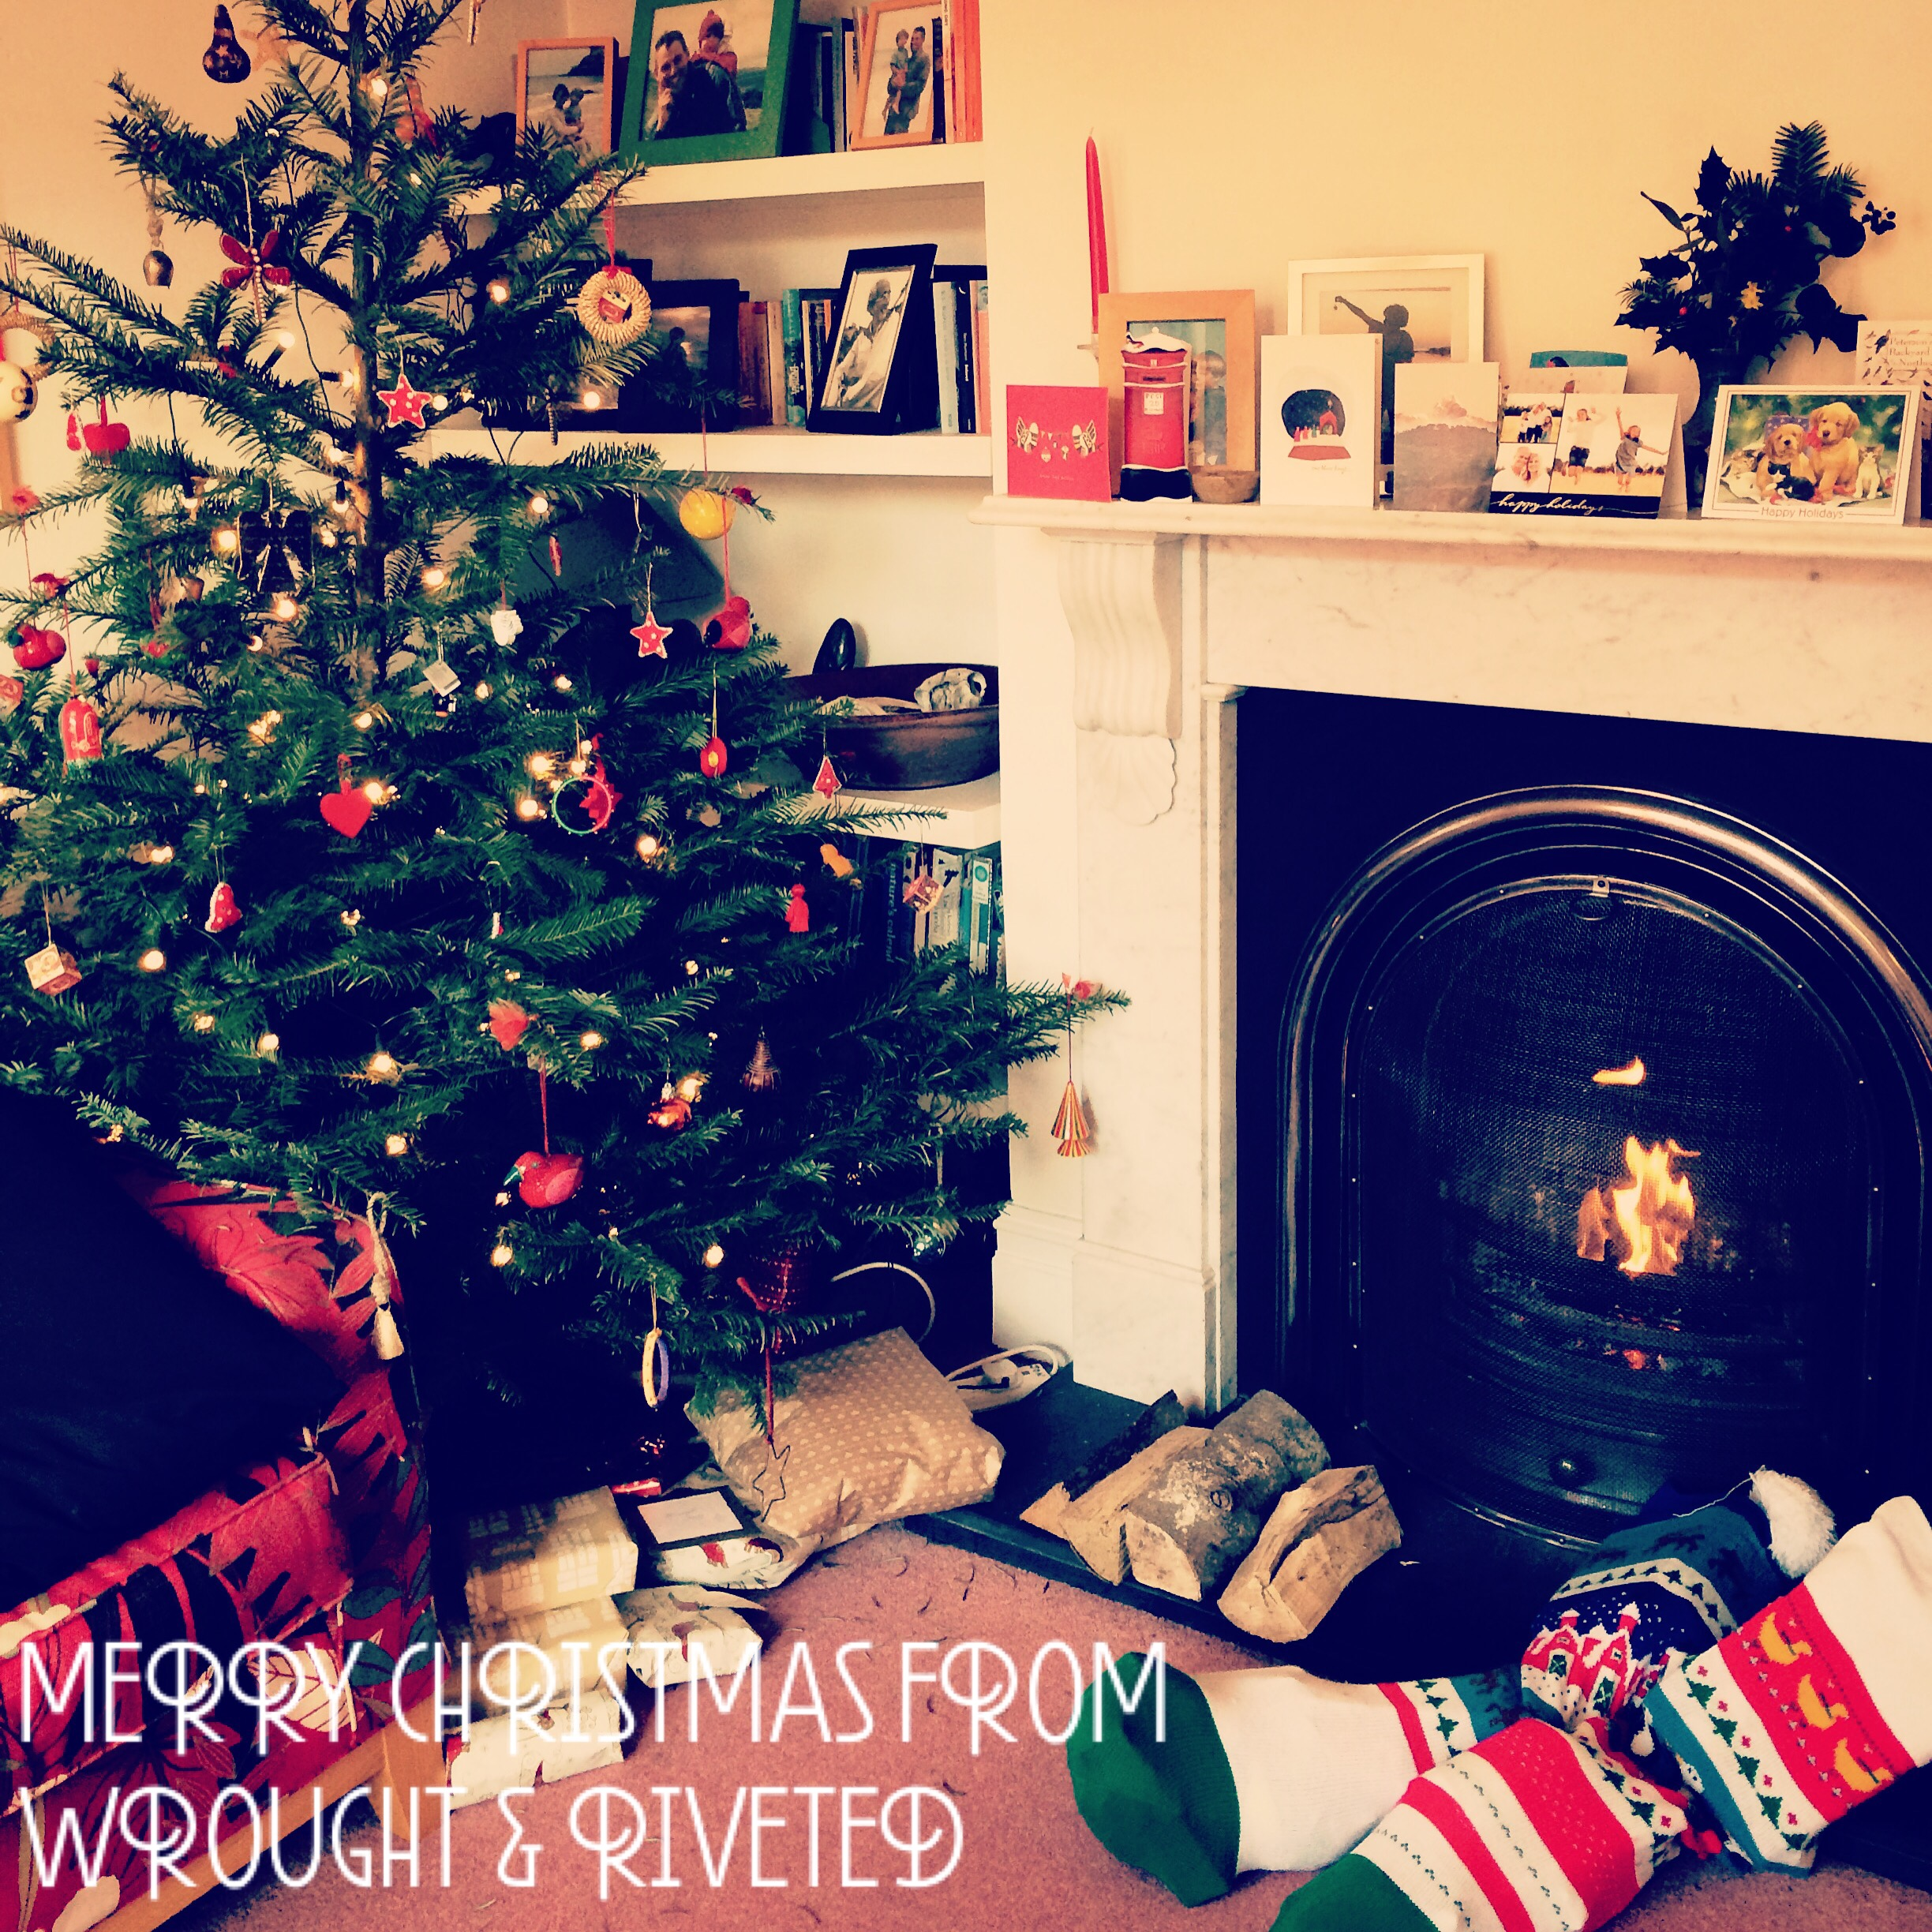 Happy Christmas from Wrought & Riveted